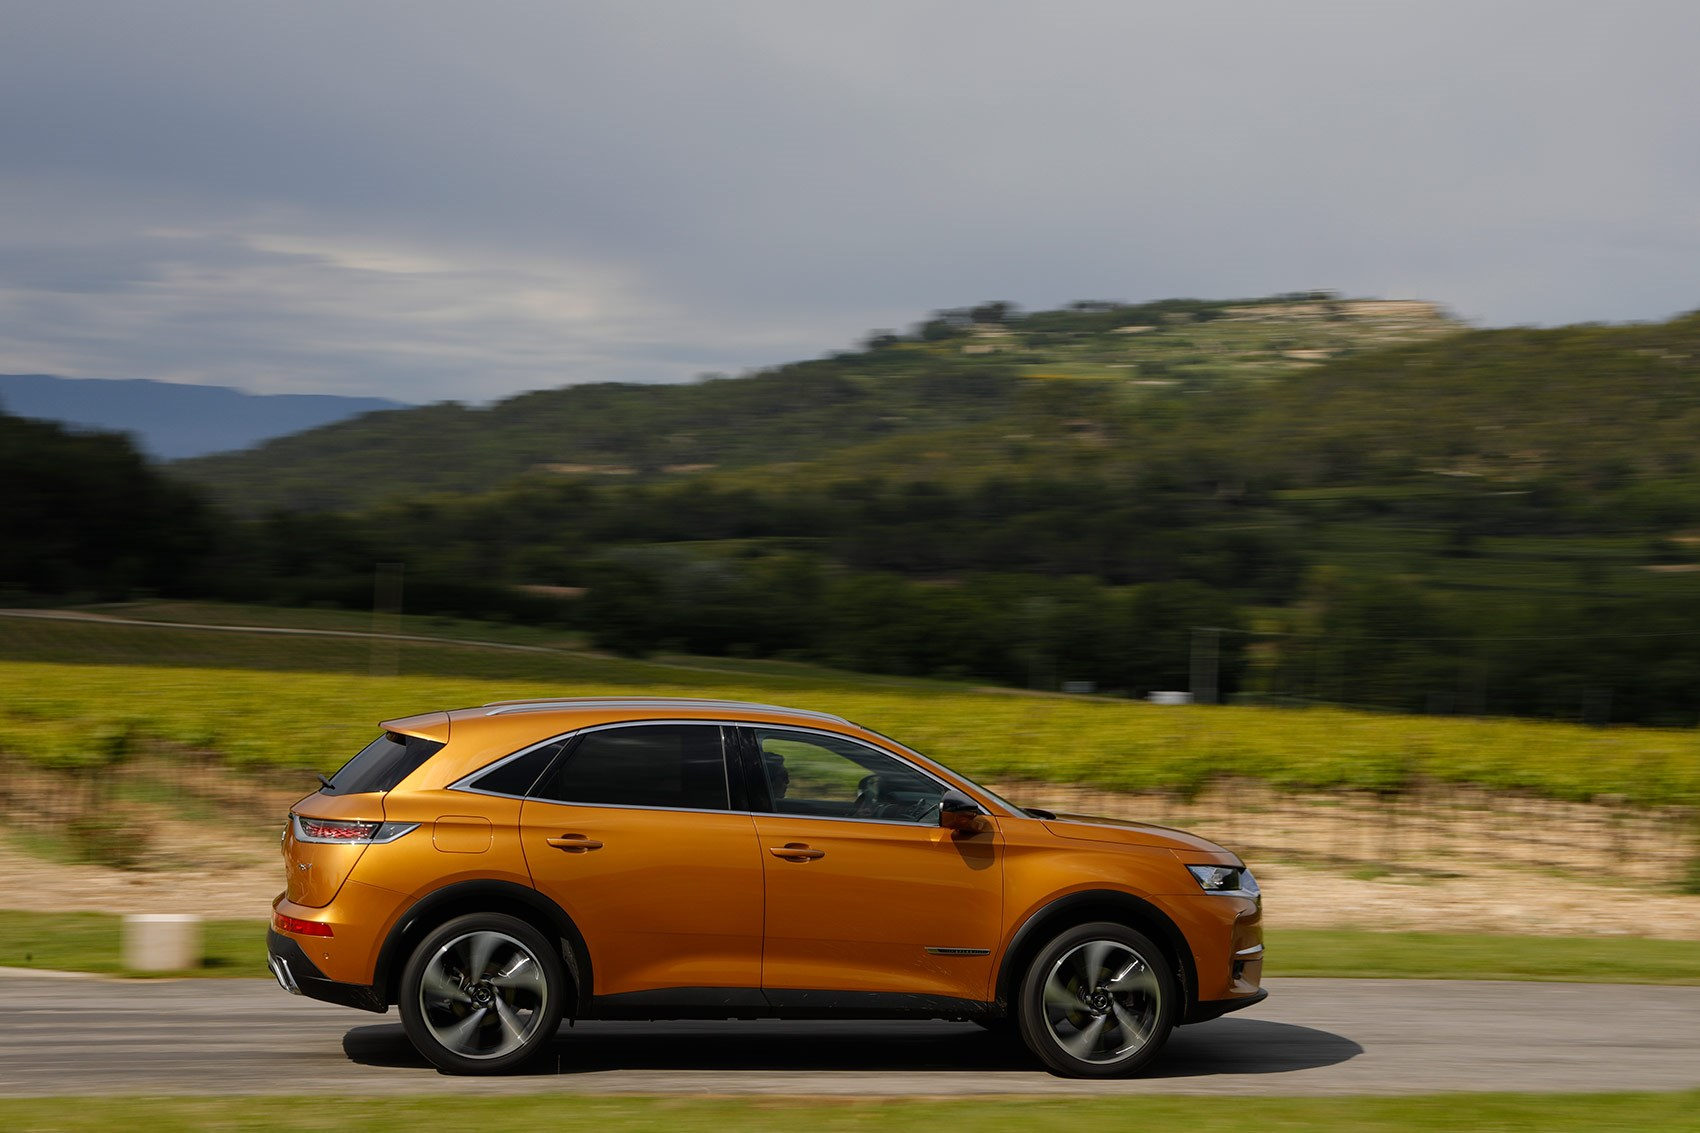 DS7 Crossback PureTech 225 (2018) review, test and comparison, dates